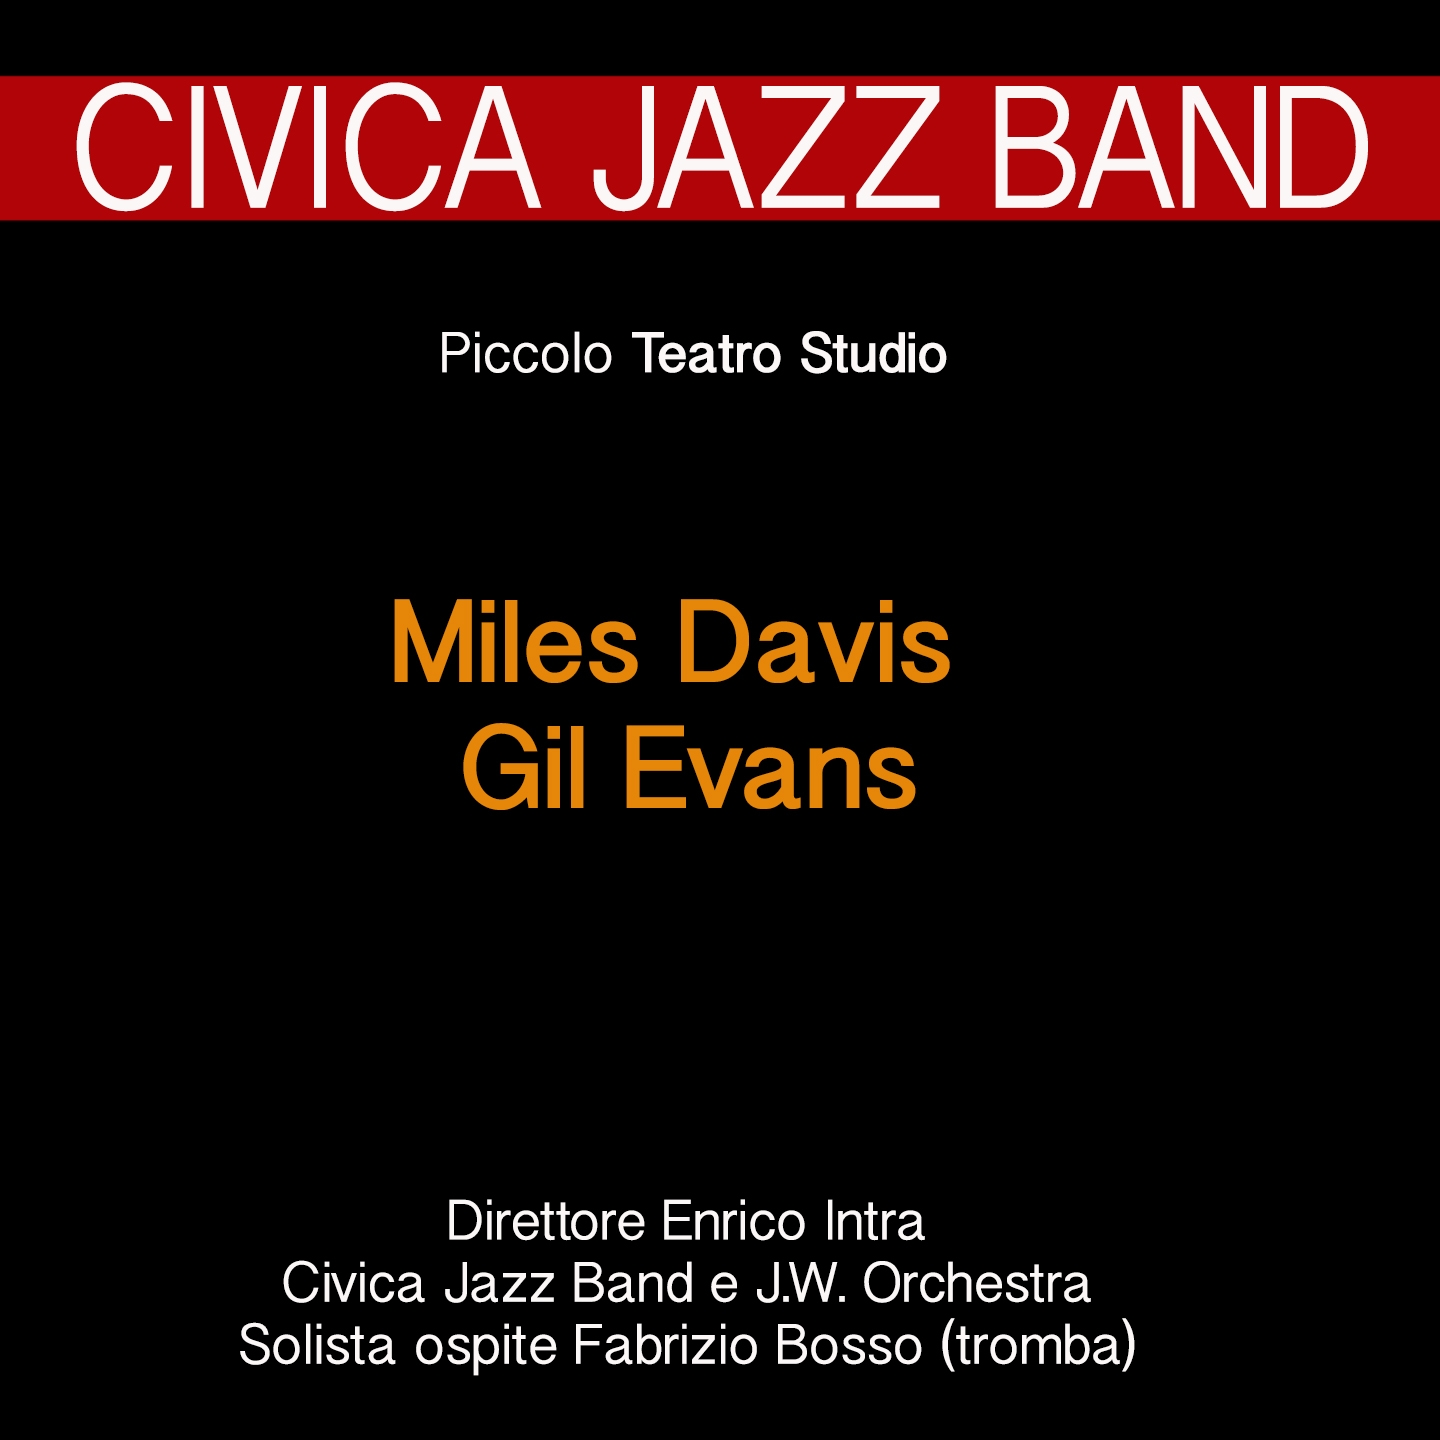 A Tribute to Miles Davis&Gil Evans